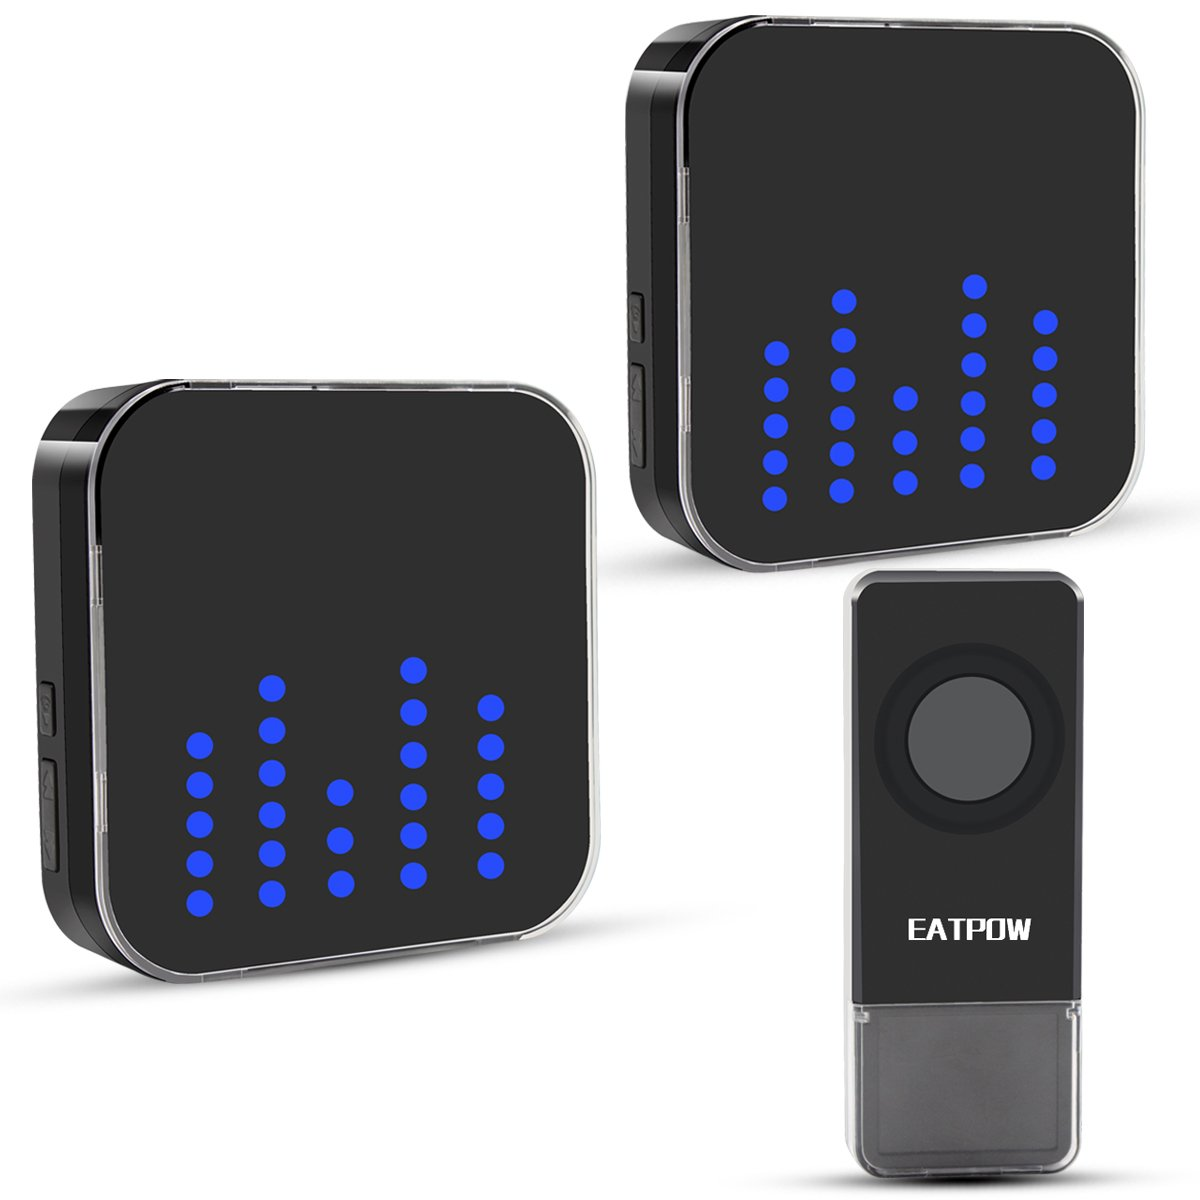 Wireless Doorbell,EATPOW Door Bell Chime Kit,1 Push Button & 2 Plug - in Receivers,Over 1000 Feet Operating Range with 4 Levels Volume and LED Flash 52 Melodies to Choose.